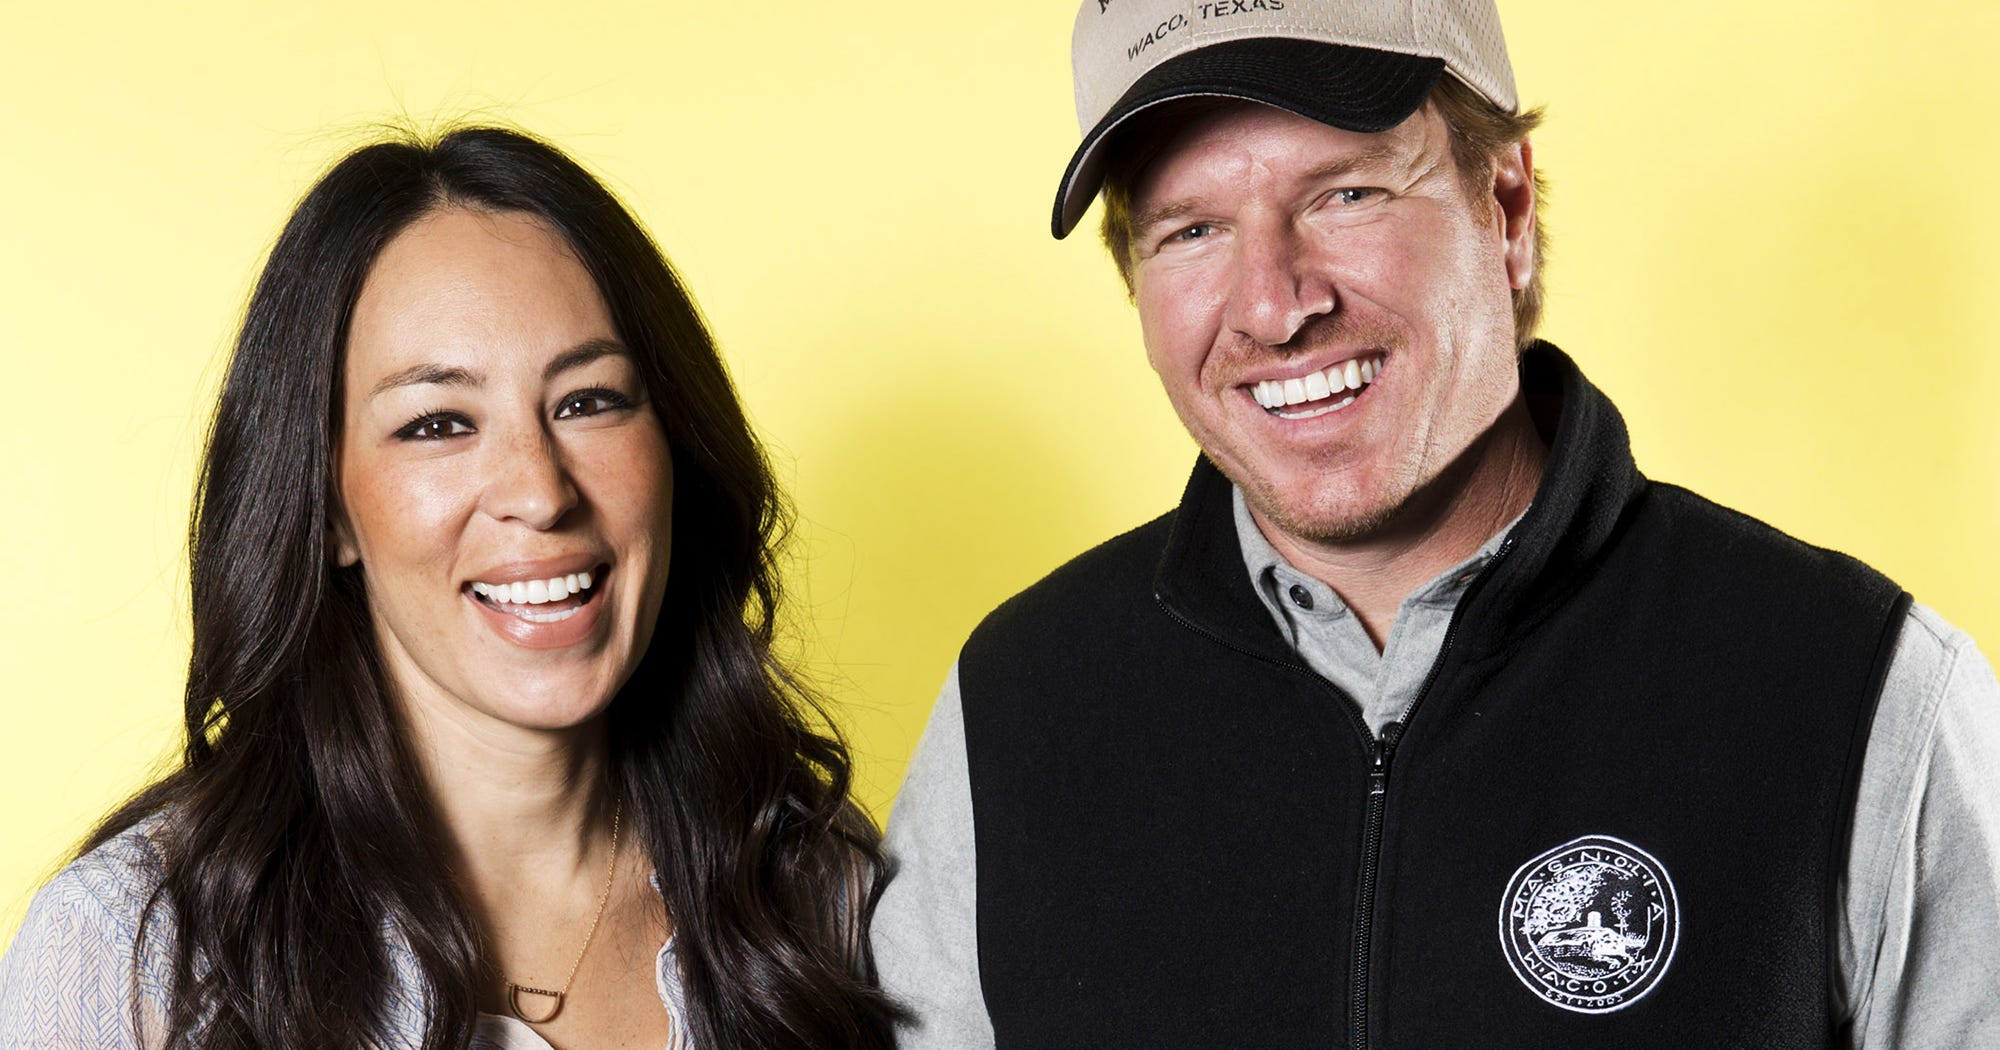 chip joanna gaines explain meaning behind magnolia name. Black Bedroom Furniture Sets. Home Design Ideas